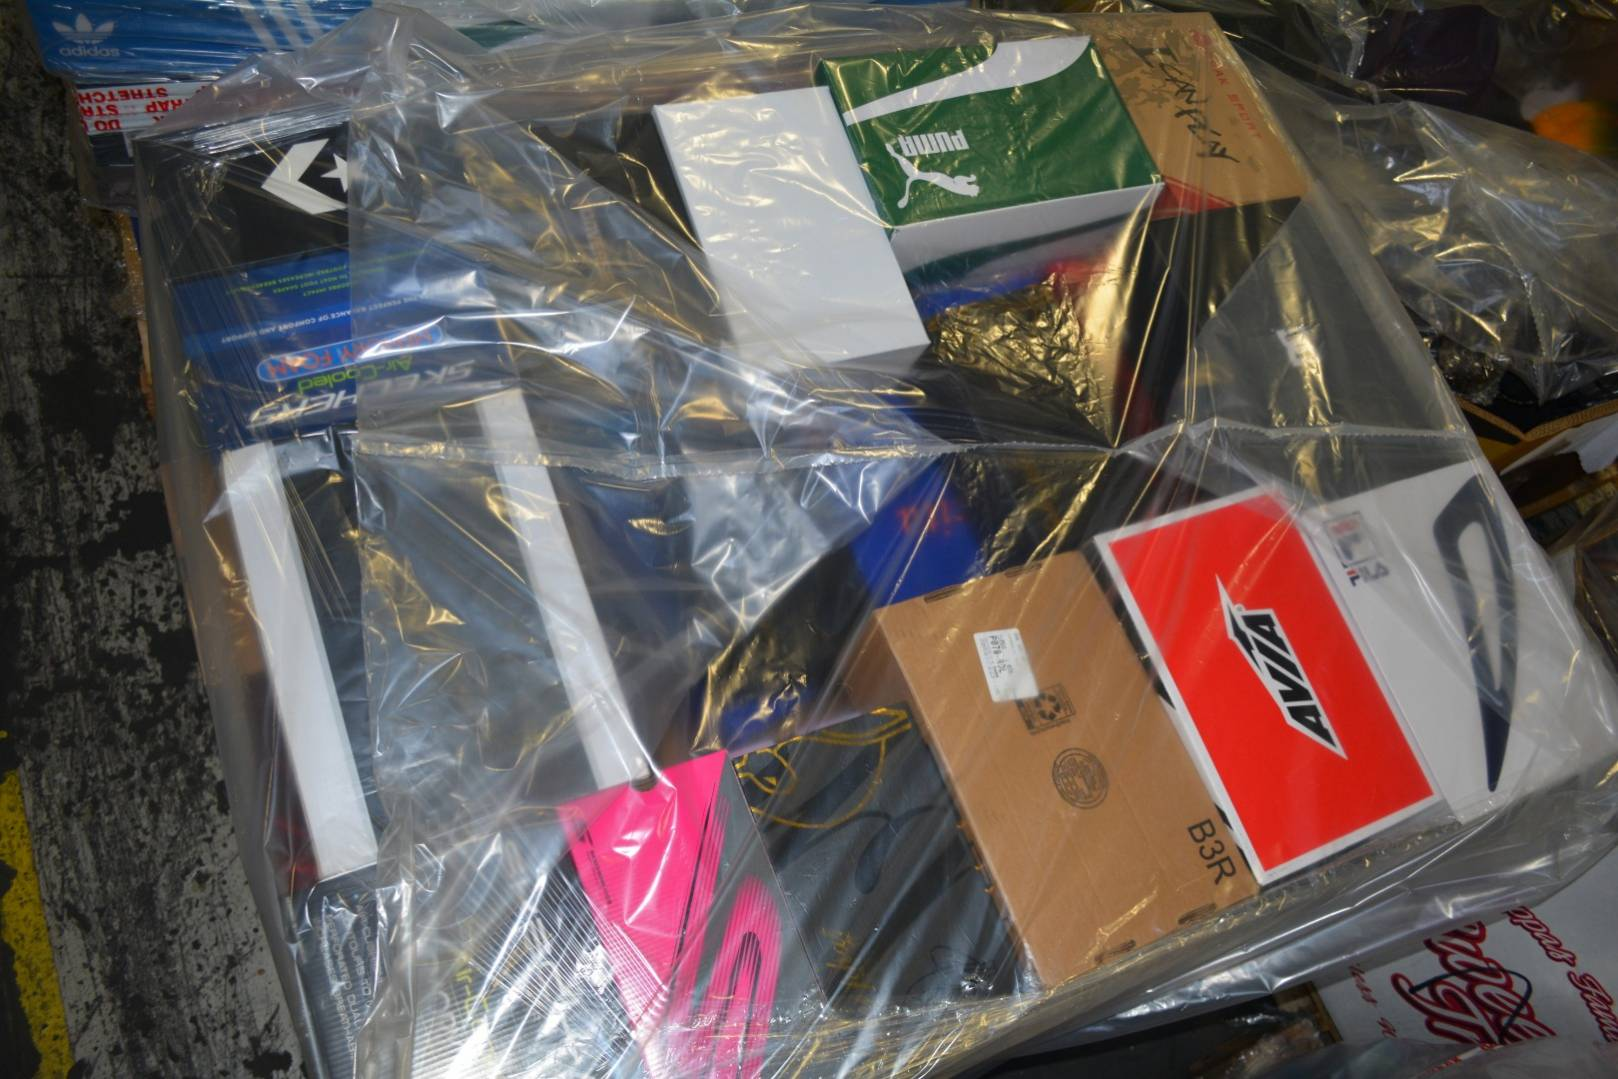 1df845fb3bd6c Via Trading | Wholesale Branded Shoes | Skechers, Levis, Adidas and More!